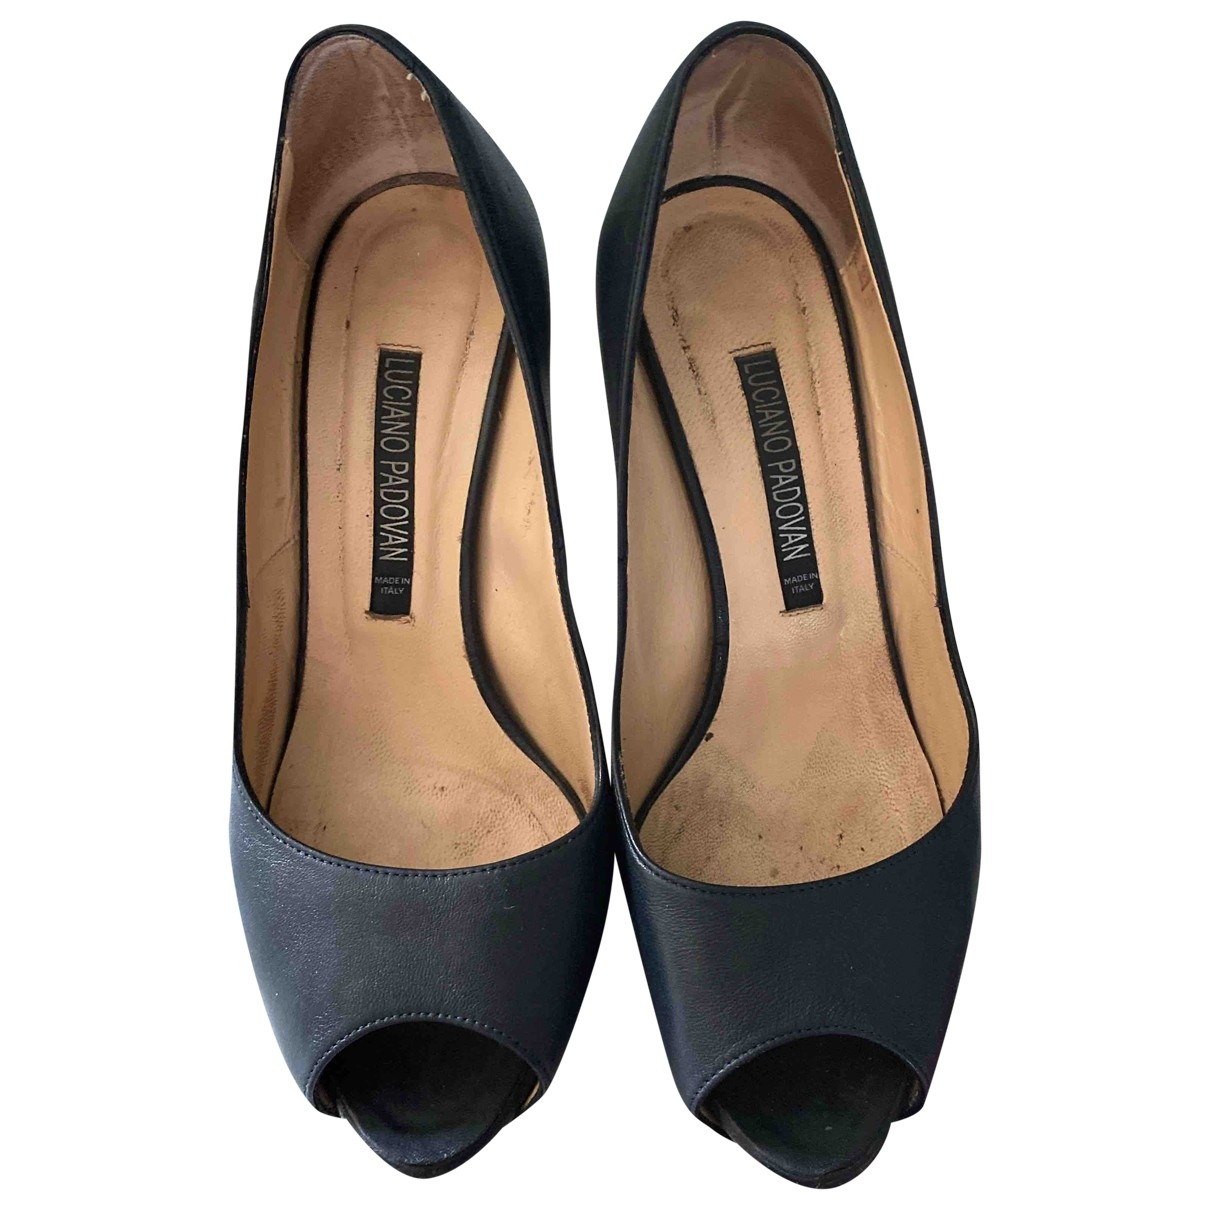 Luciano Padovan \N Blue Leather Heels for Women 37.5 EU